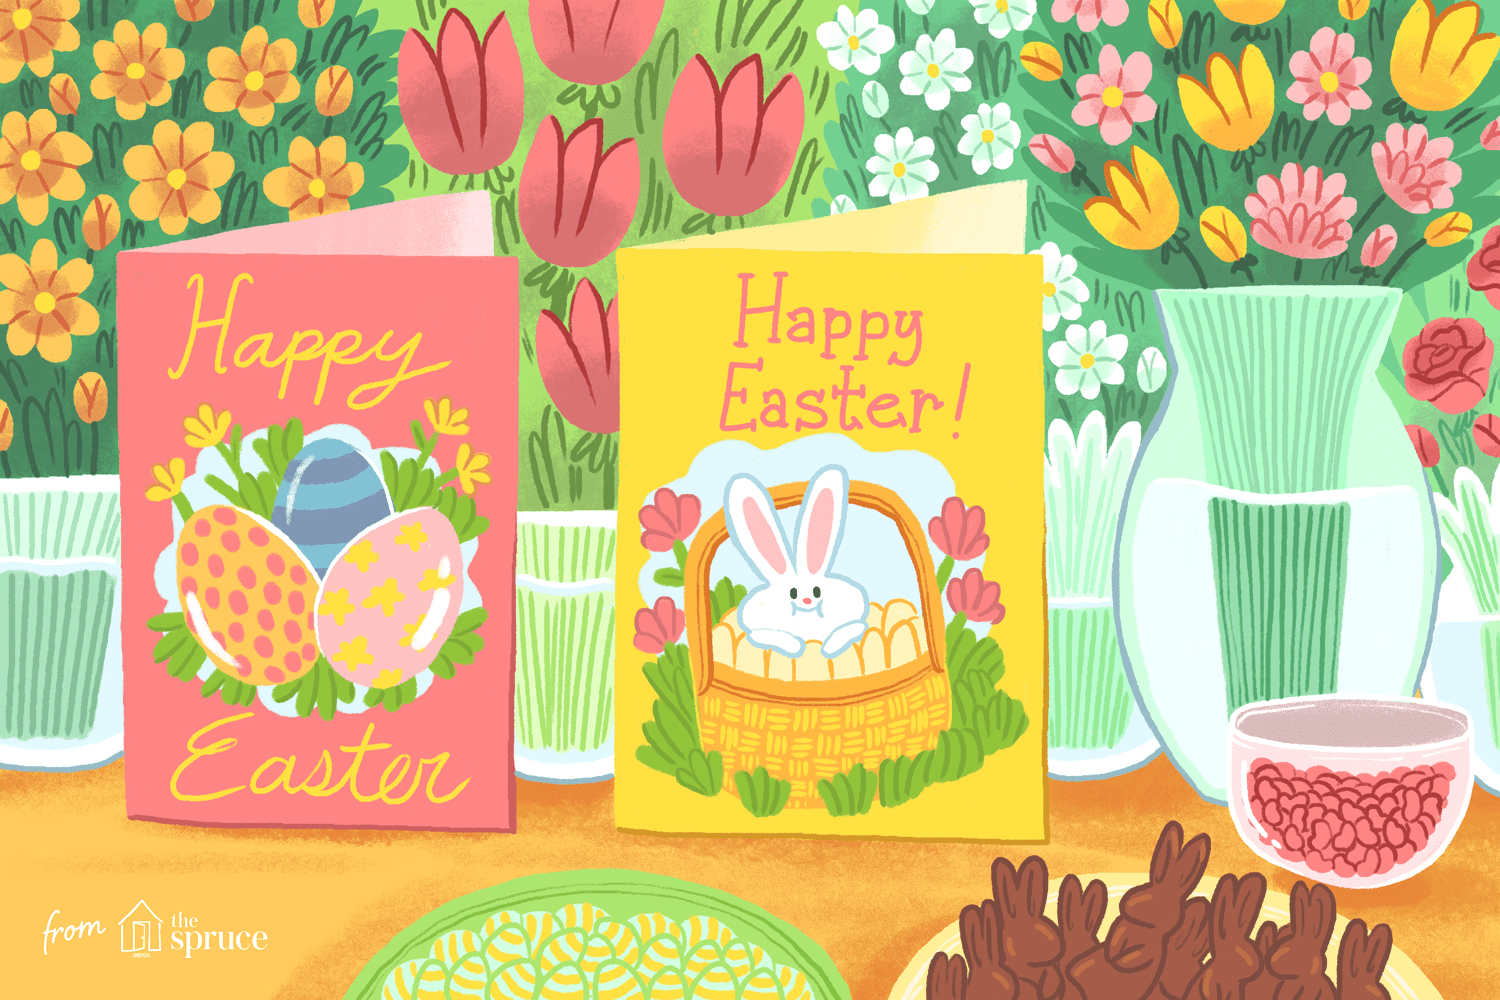 12 Free, Printable Easter Cards For Everyone You Know - Free Printable Easter Cards For Grandchildren